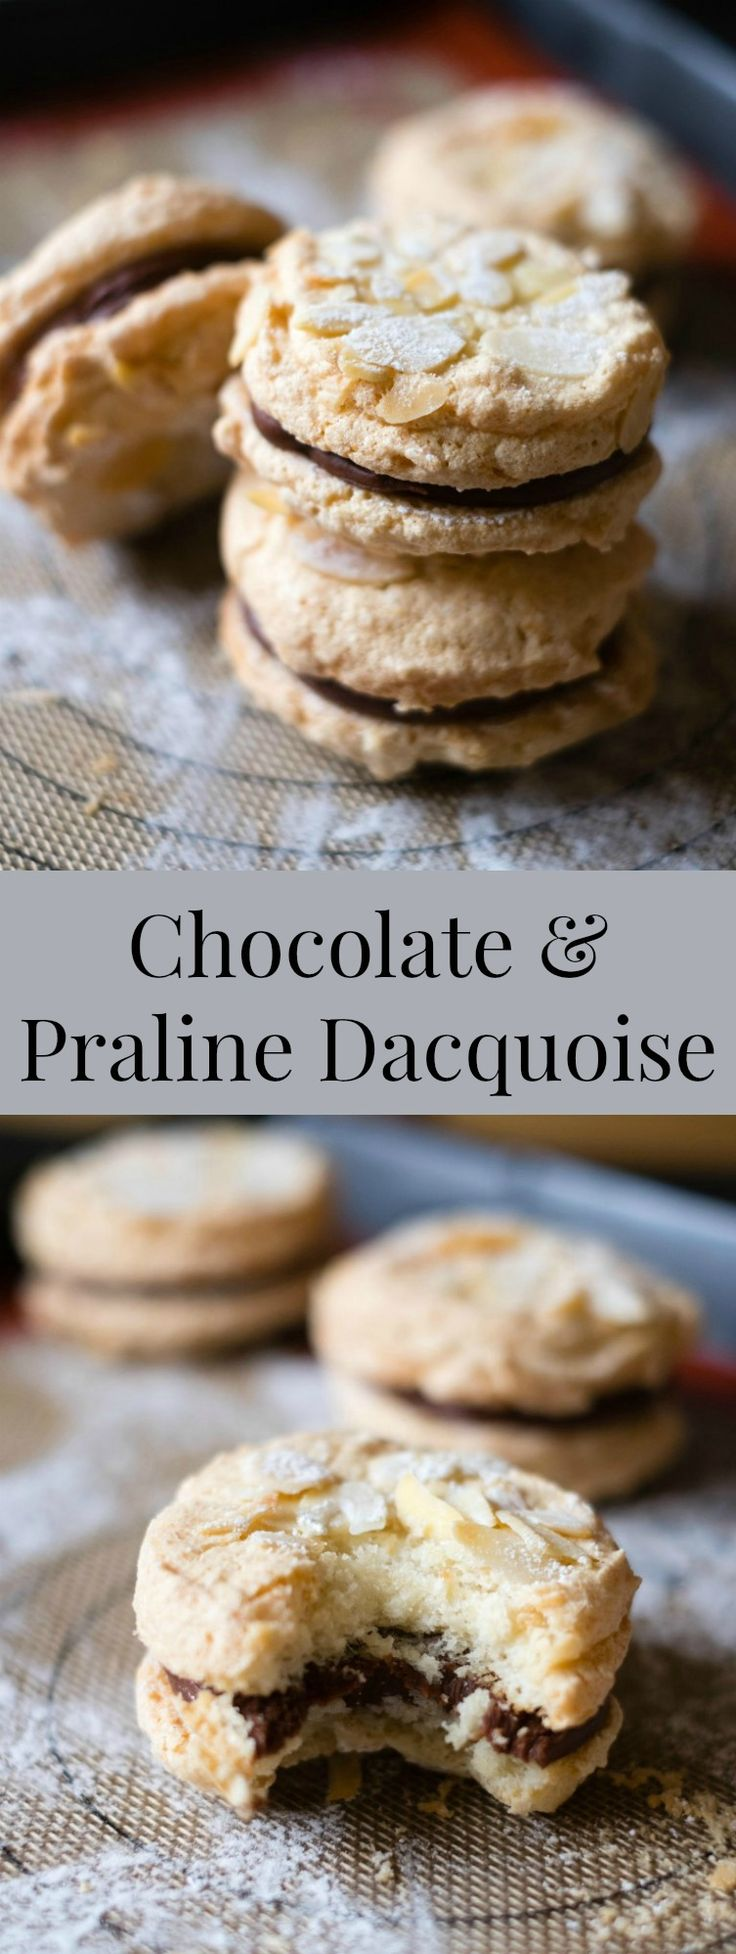 Chocolate & Praline Dacquoise